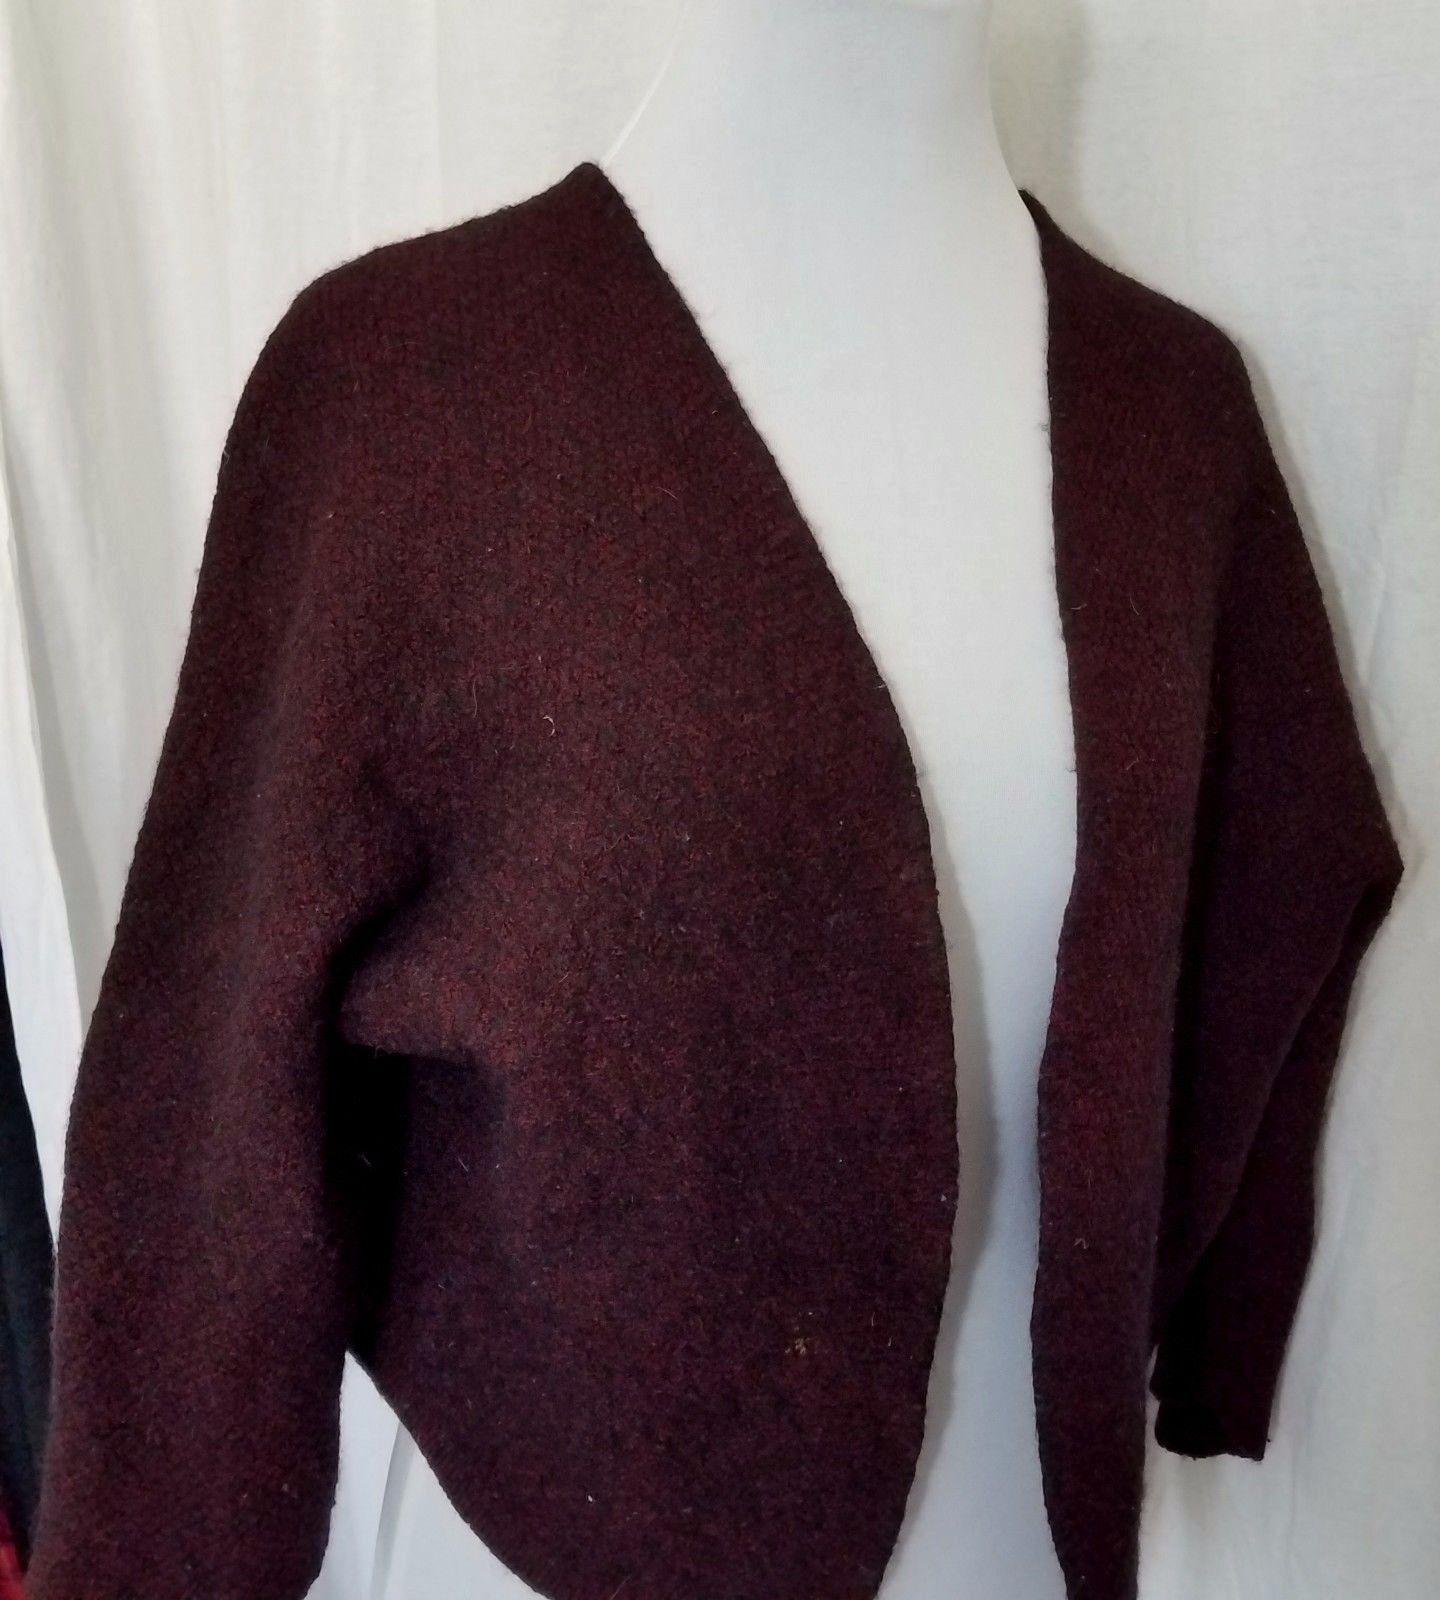 Brandy Melville Sweater Burgundy Black 3/4 Sleeve One Size